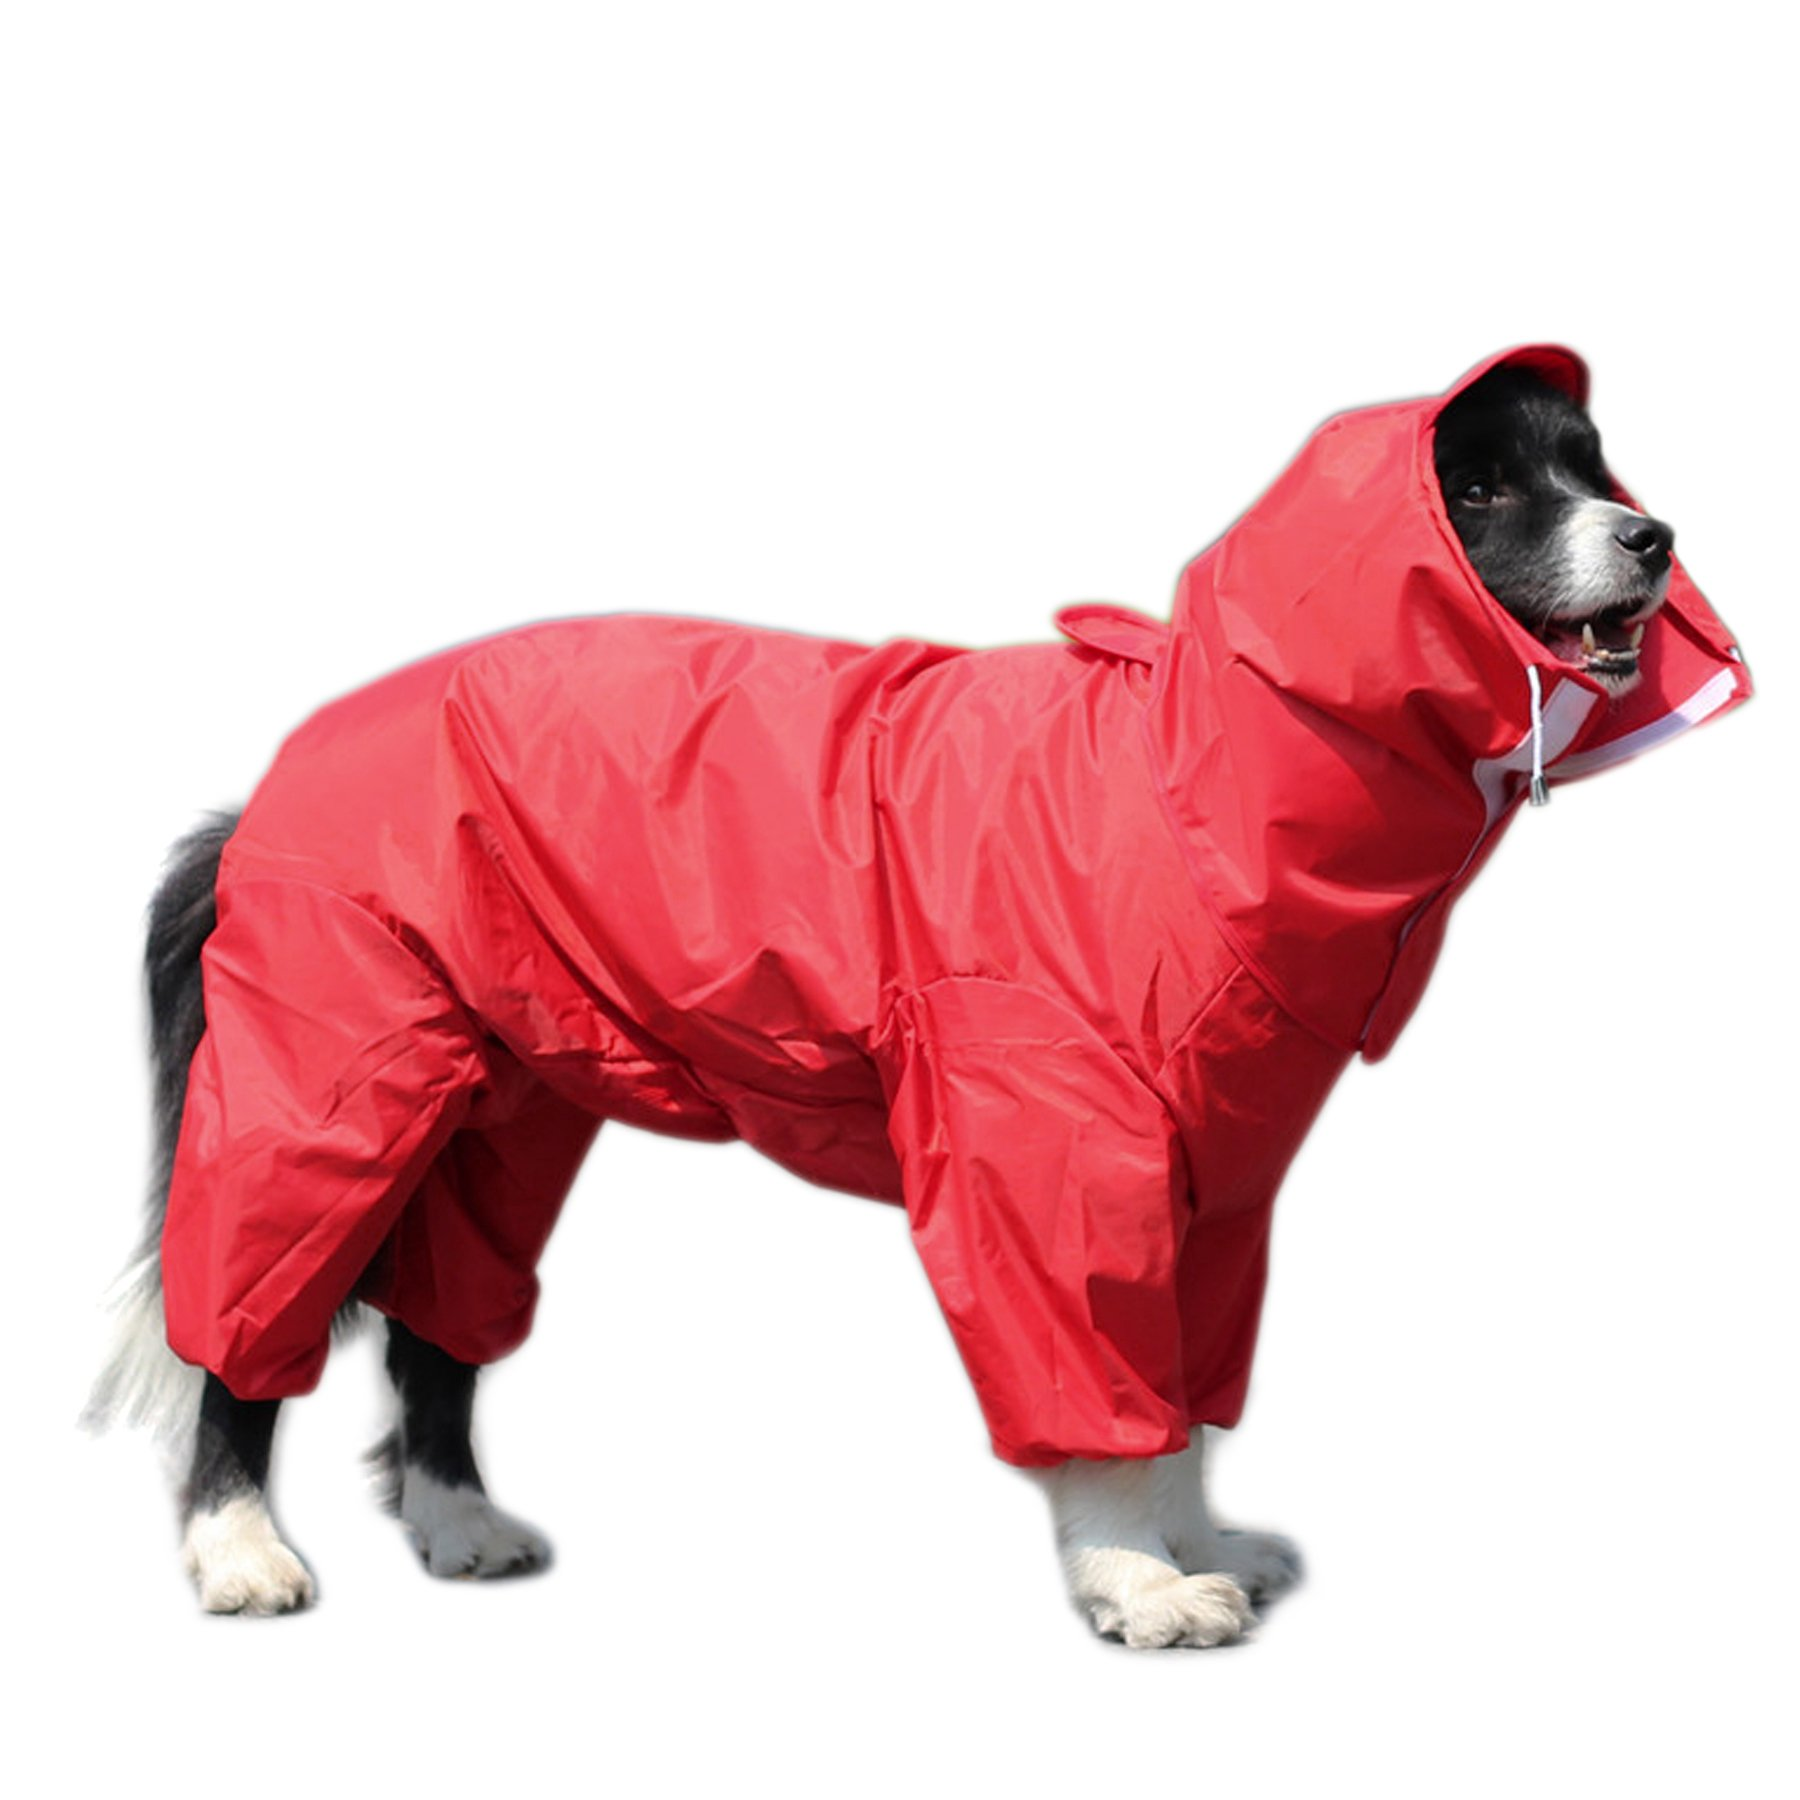 Alfie Pet by Petoga Couture - Bella Rainy Days Waterproof Raincoat (for Dogs and Cats) - Color: Red, Size: Medium